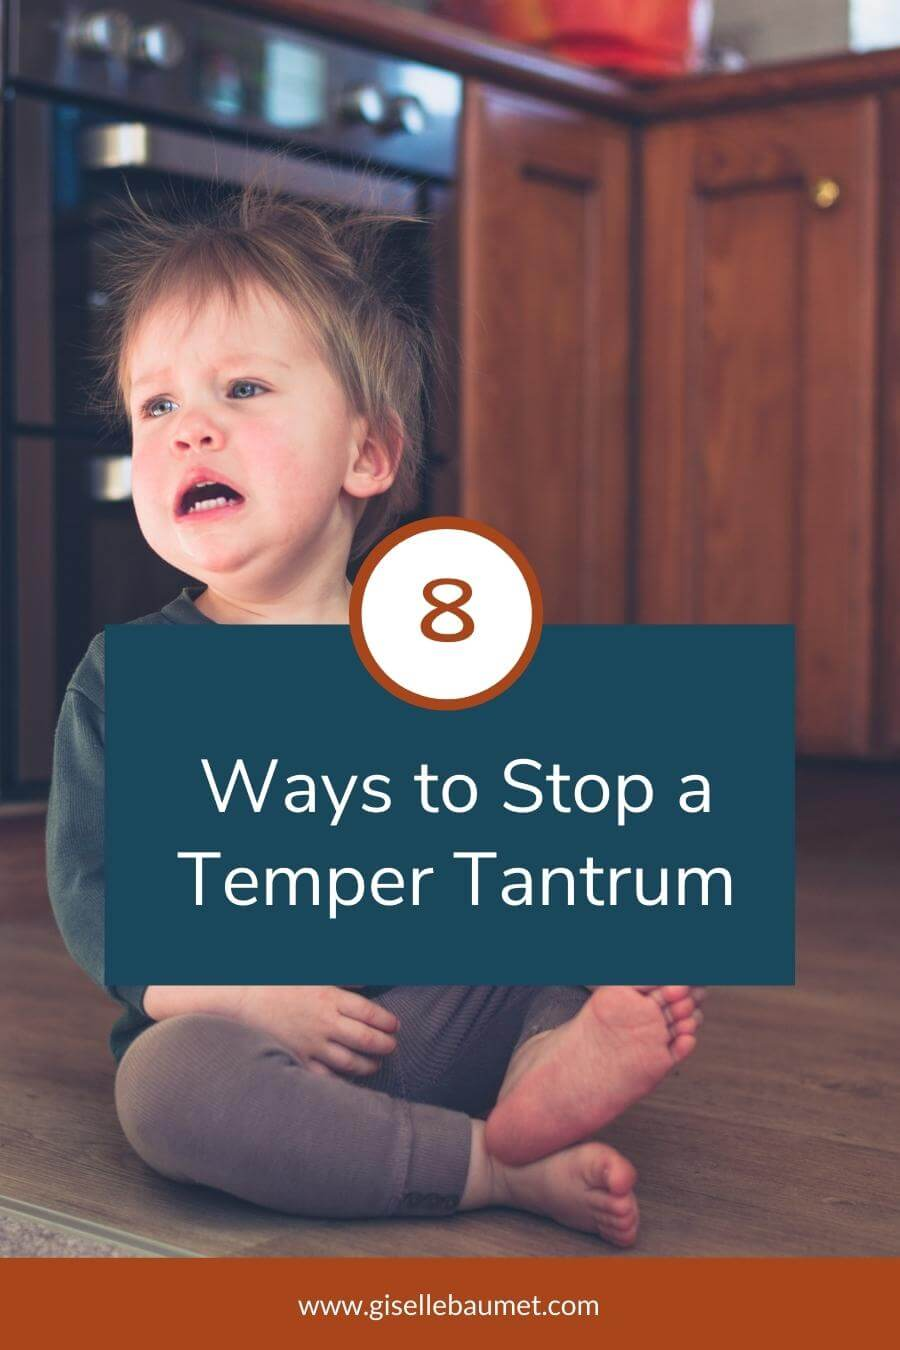 8 Ways to Stop a Tantrum